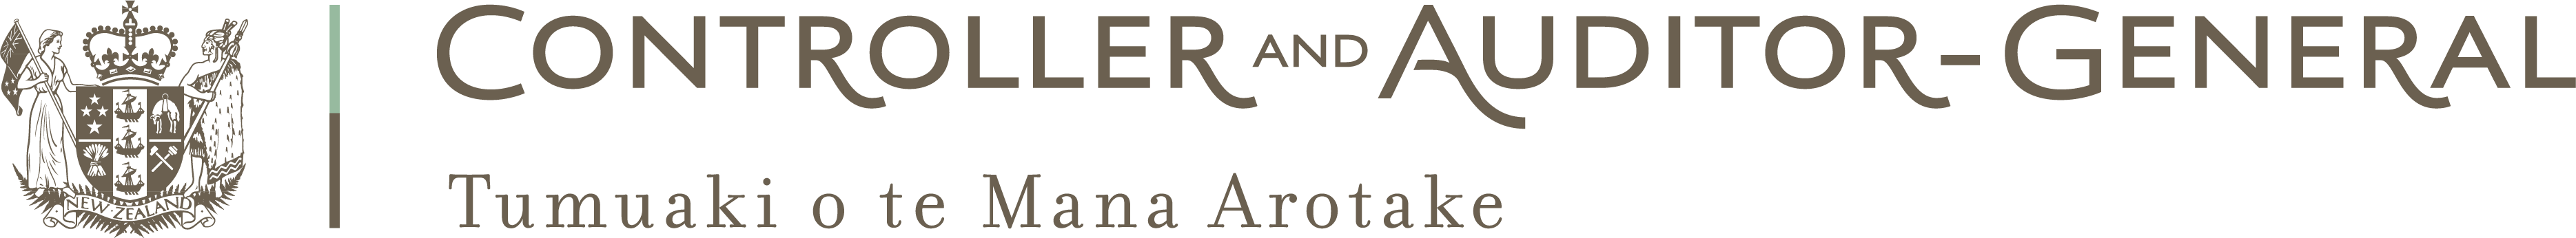 Office of the Auditor-General logo.